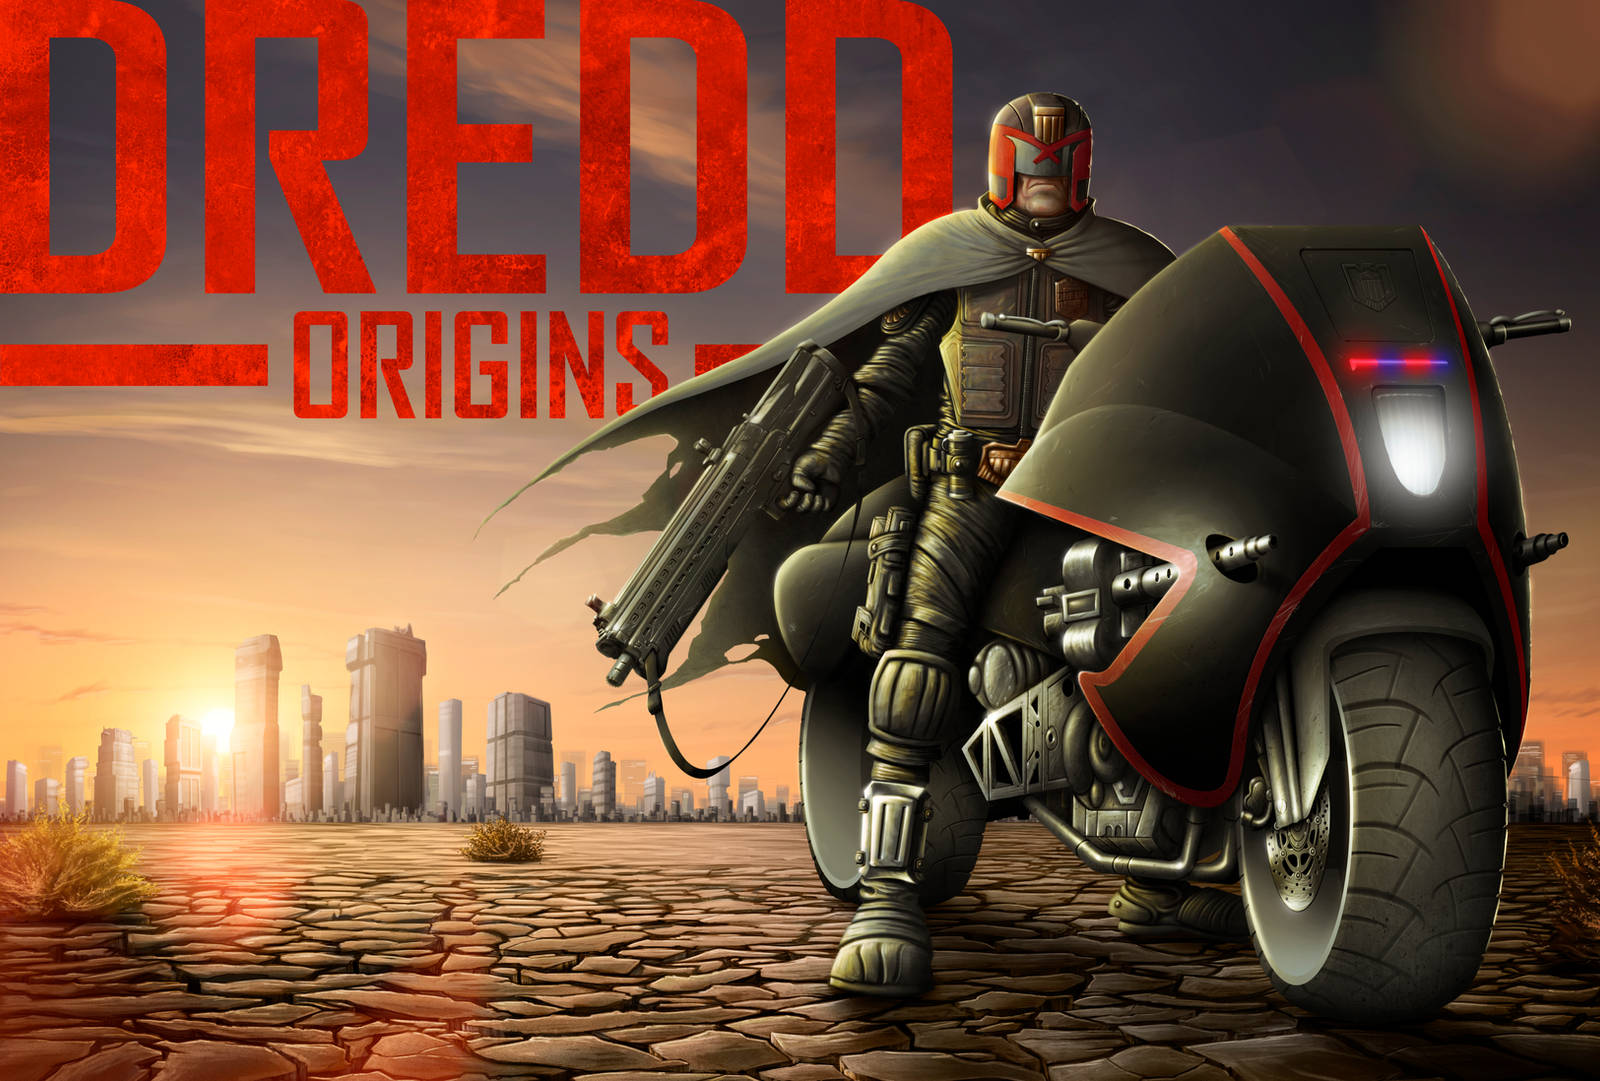 Dredd: Origins - A Sequel Concept Poster by TomBerryArtist